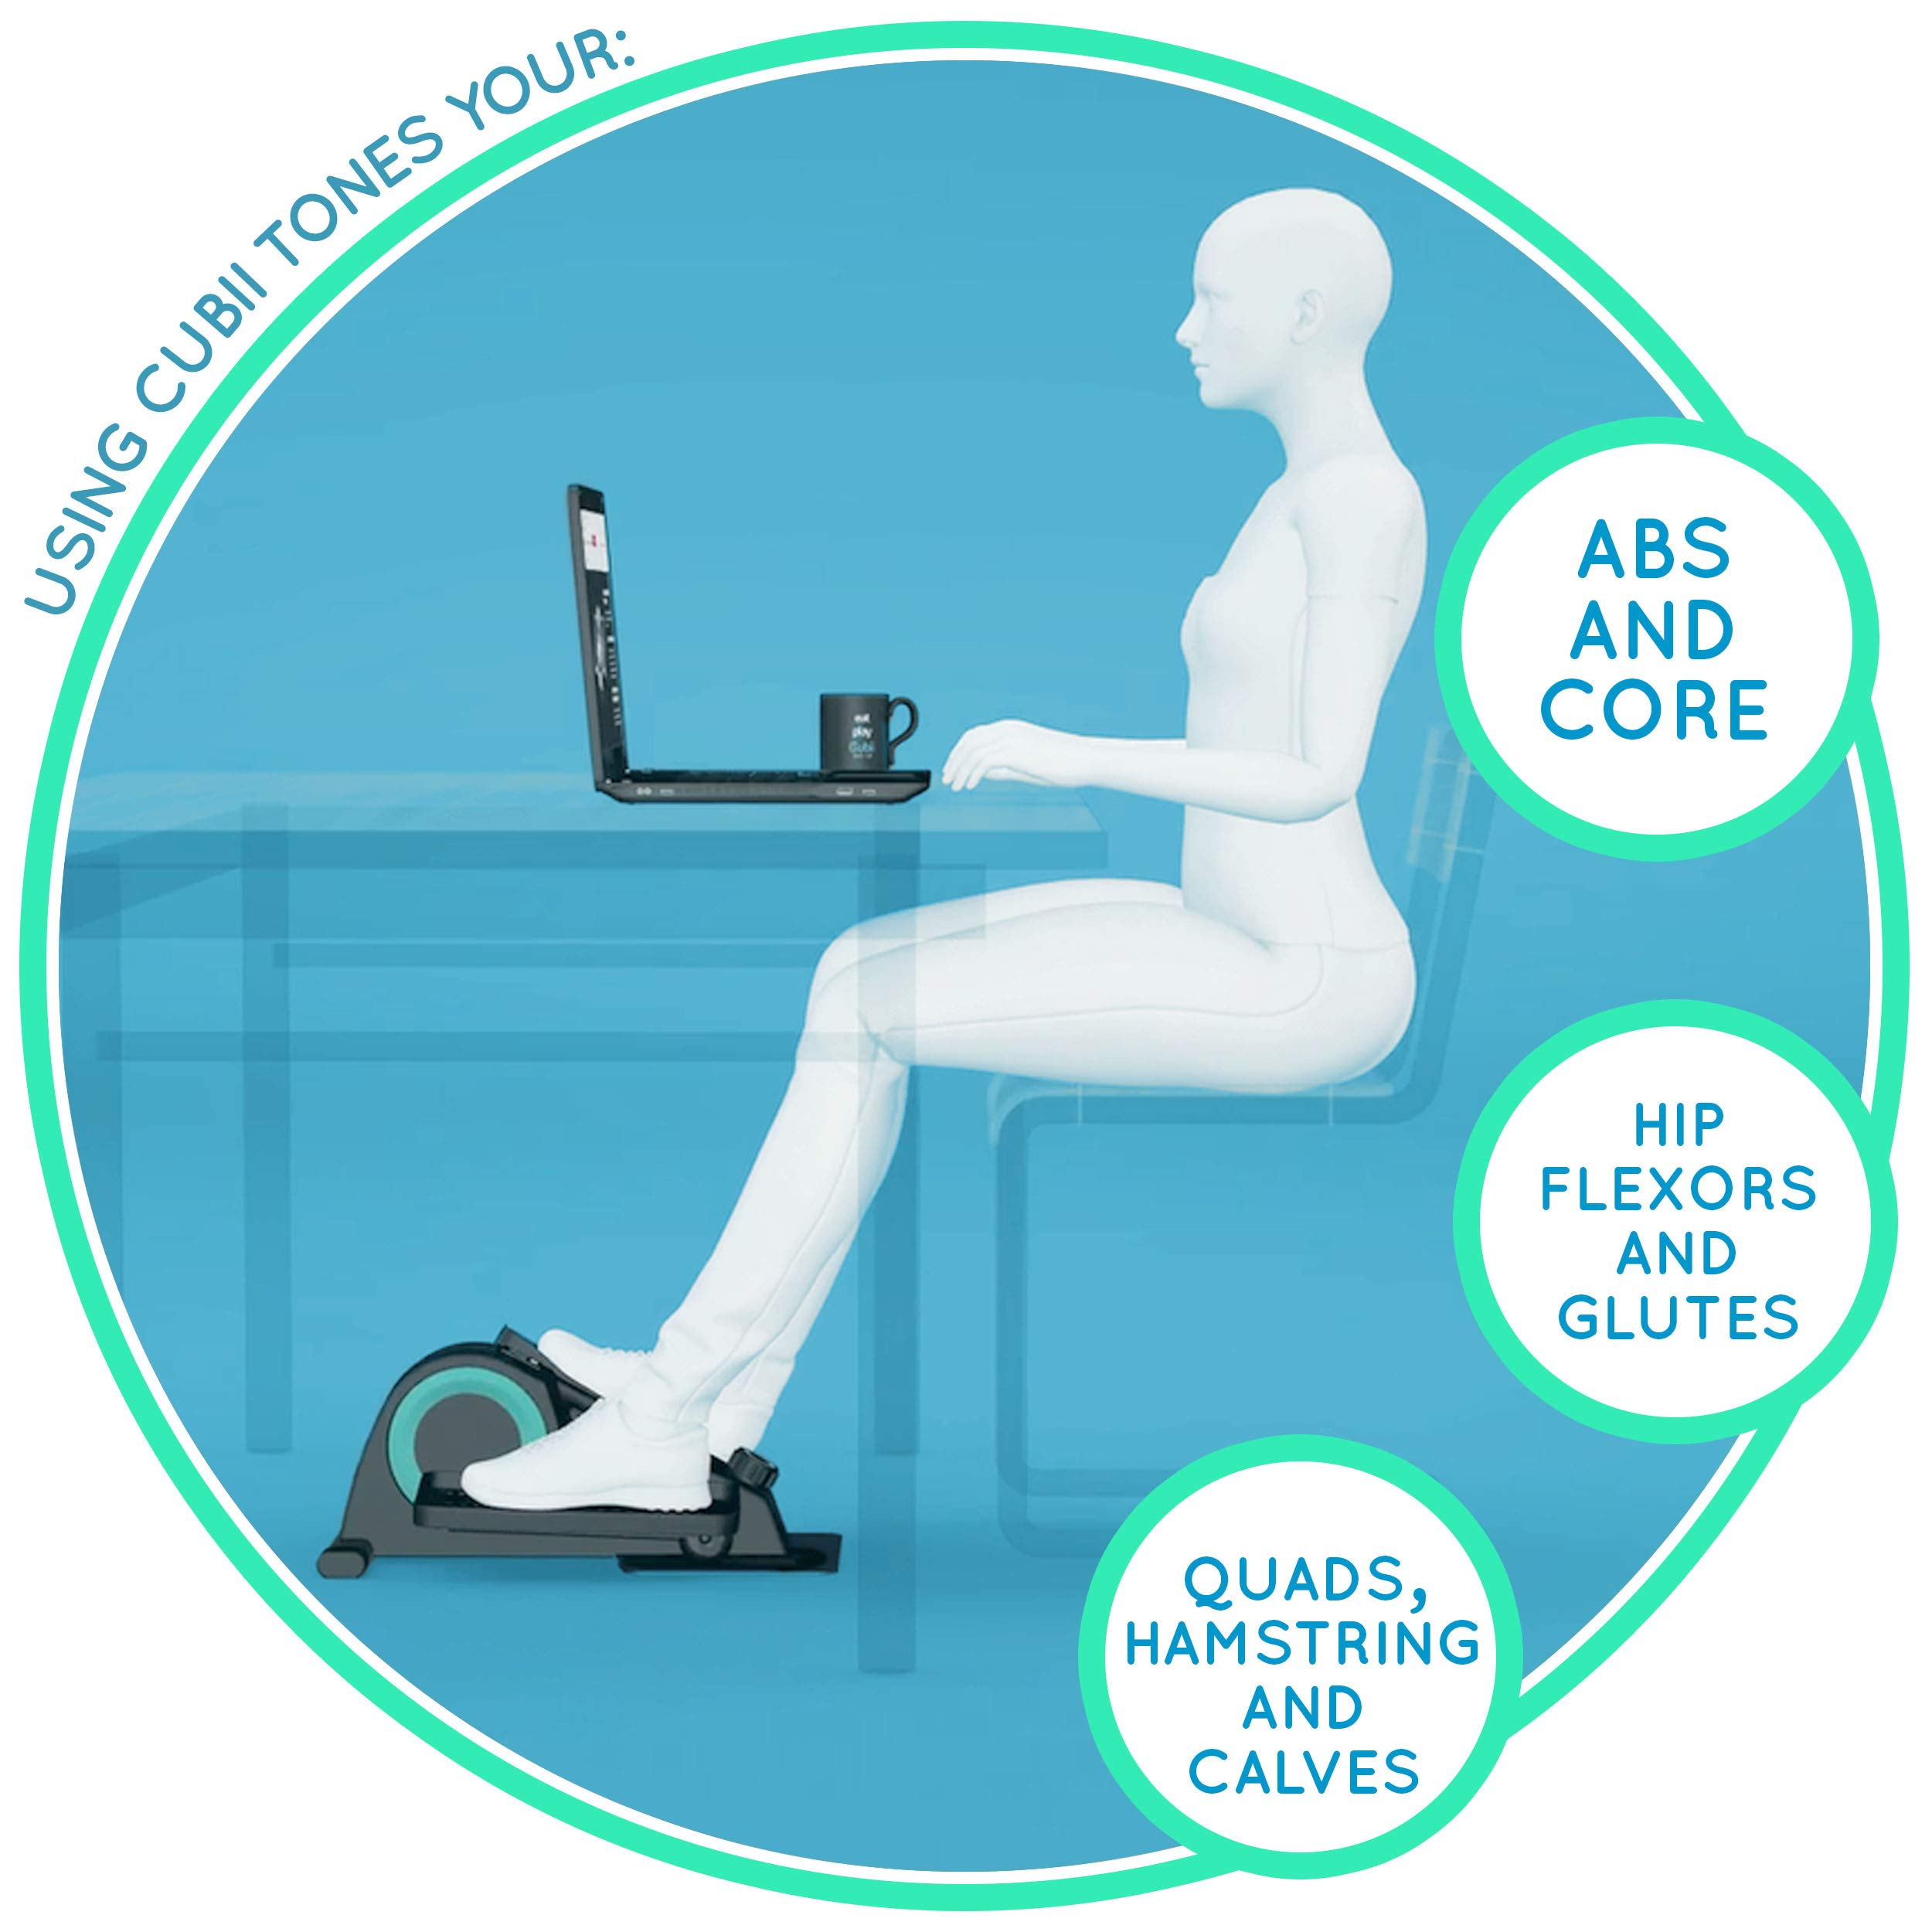 Cubii Pro Under Desk Elliptical, Bluetooth Enabled, Sync with Fitbit and HealthKit, Adjustable Resistance, Easy Assembly (Noir) by Cubii (Image #6)